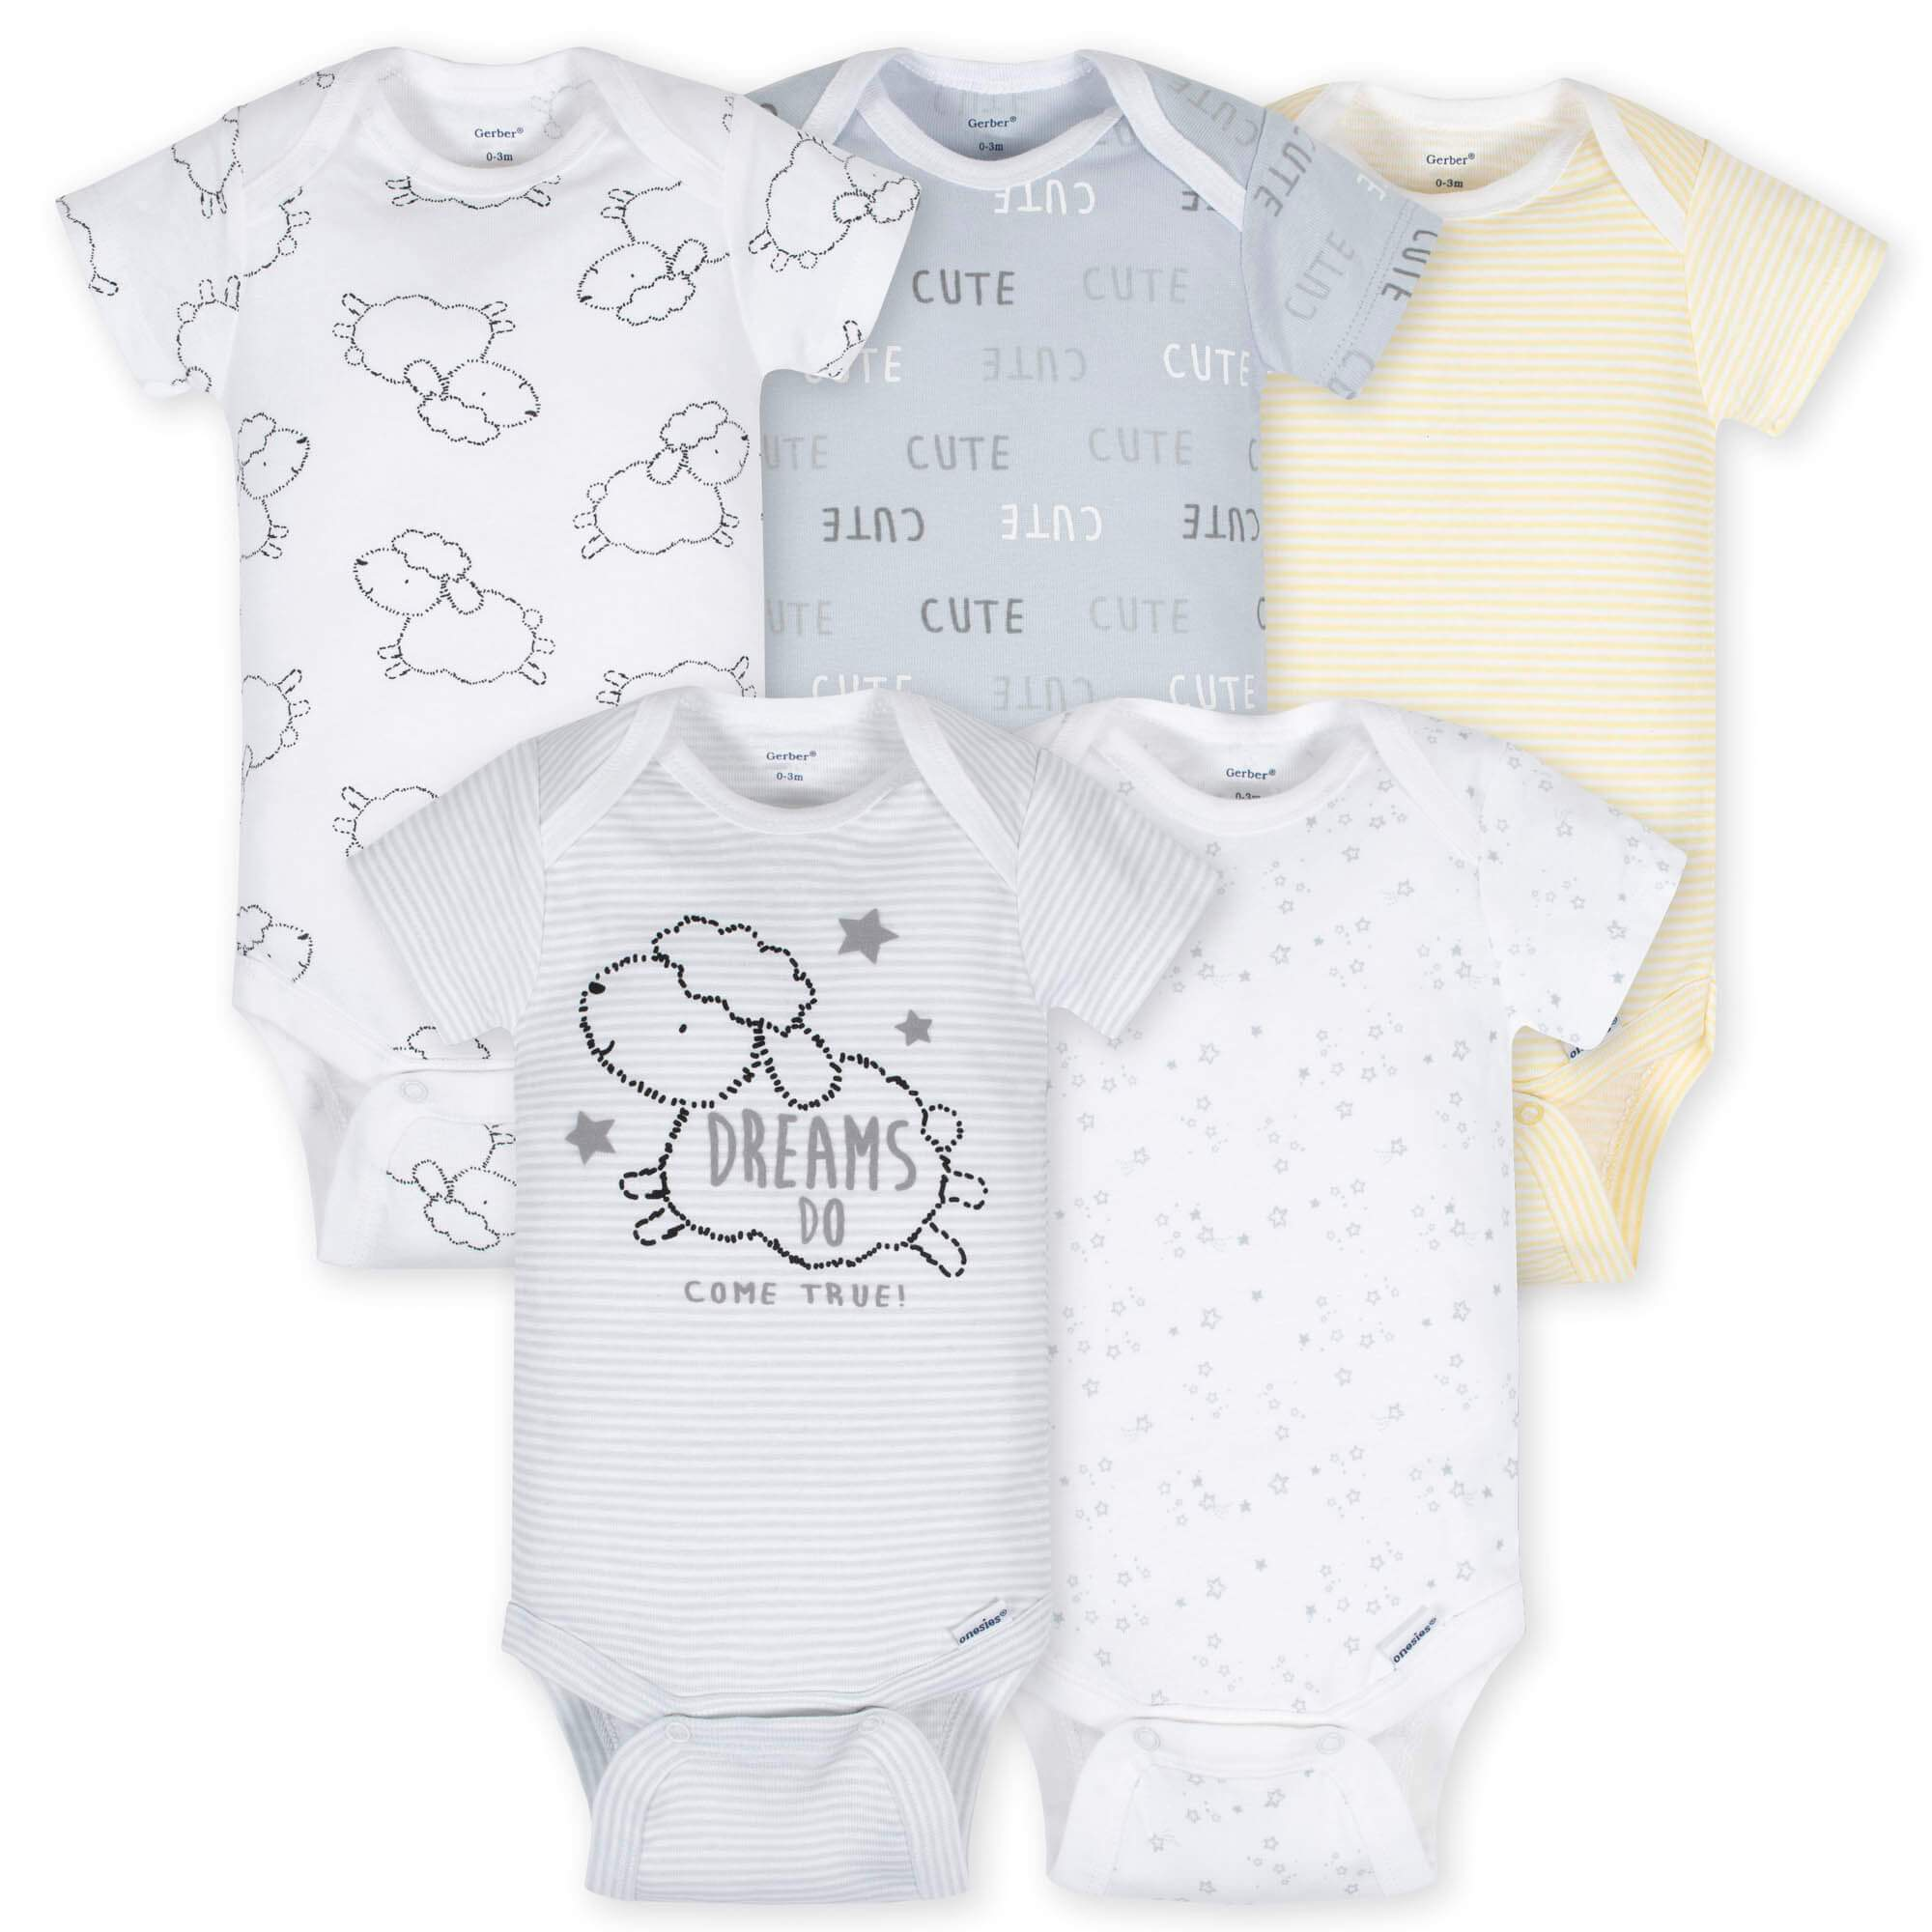 5-Pack Neutral Lamb Onesies Brand Short Sleeve Bodysuits